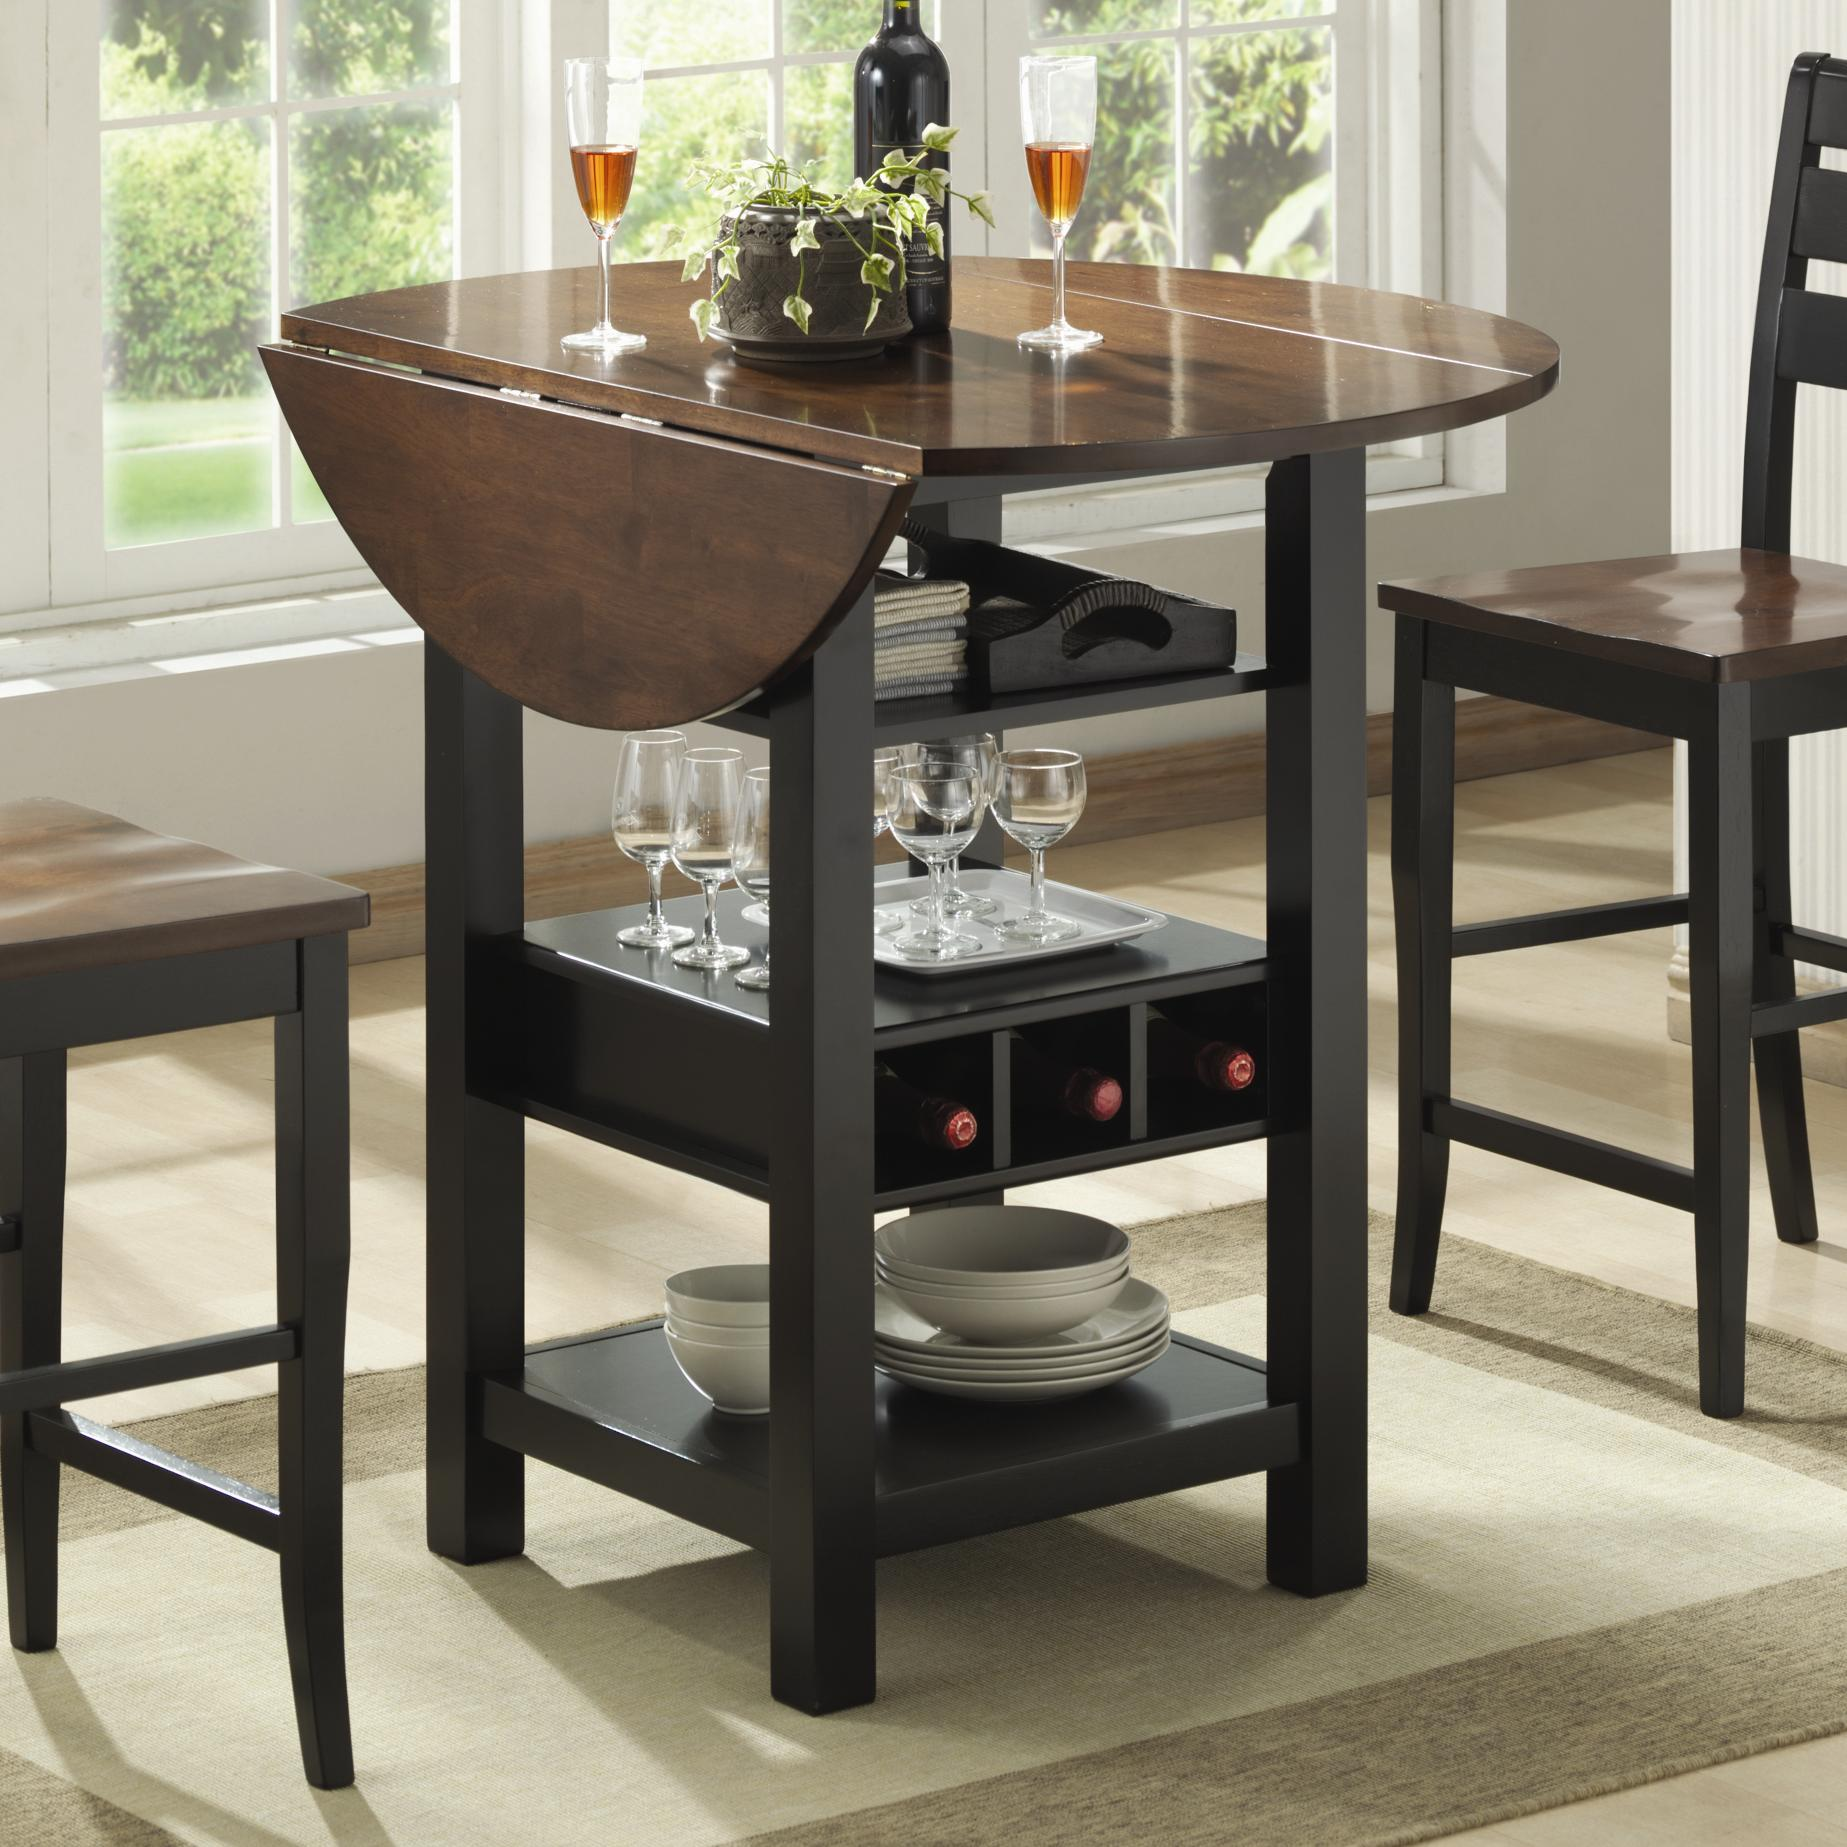 bernards ridgewood drop leaf pub table with wine rack wayside products color low height accent make side ikea wall storage bins distressed gray mini bedside pottery barn high